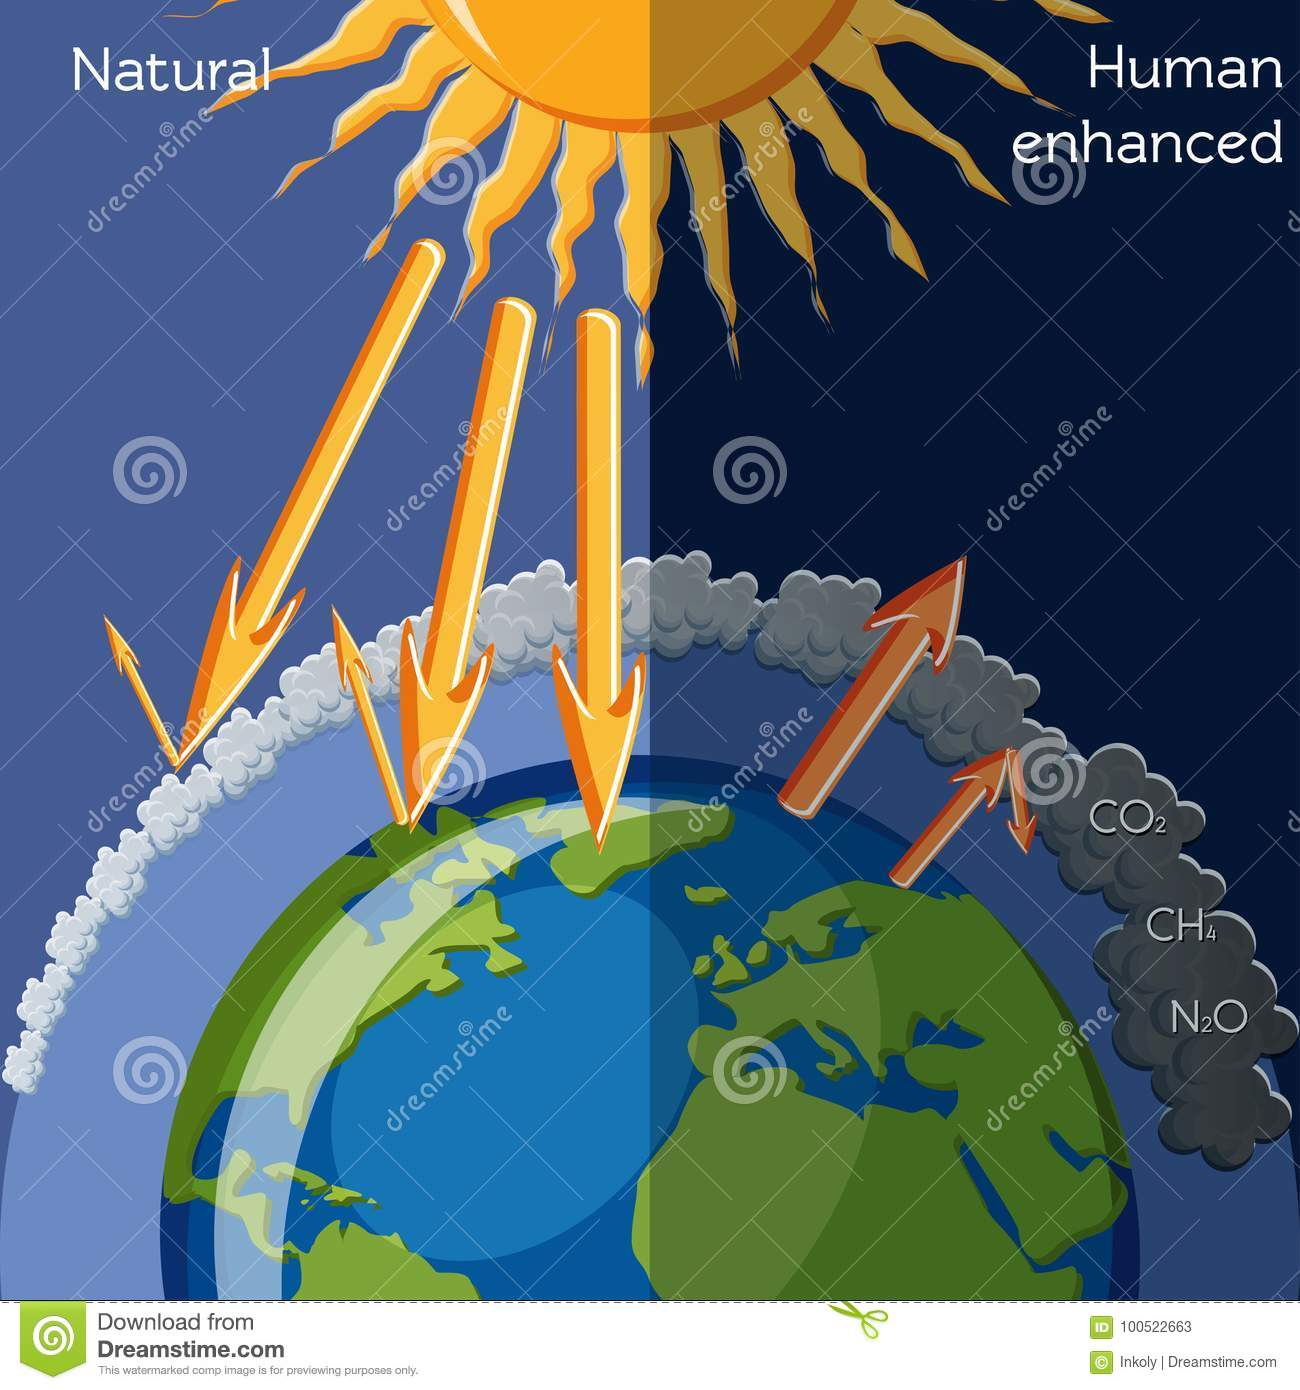 natural and human enhanced greenhouse effect stock vector